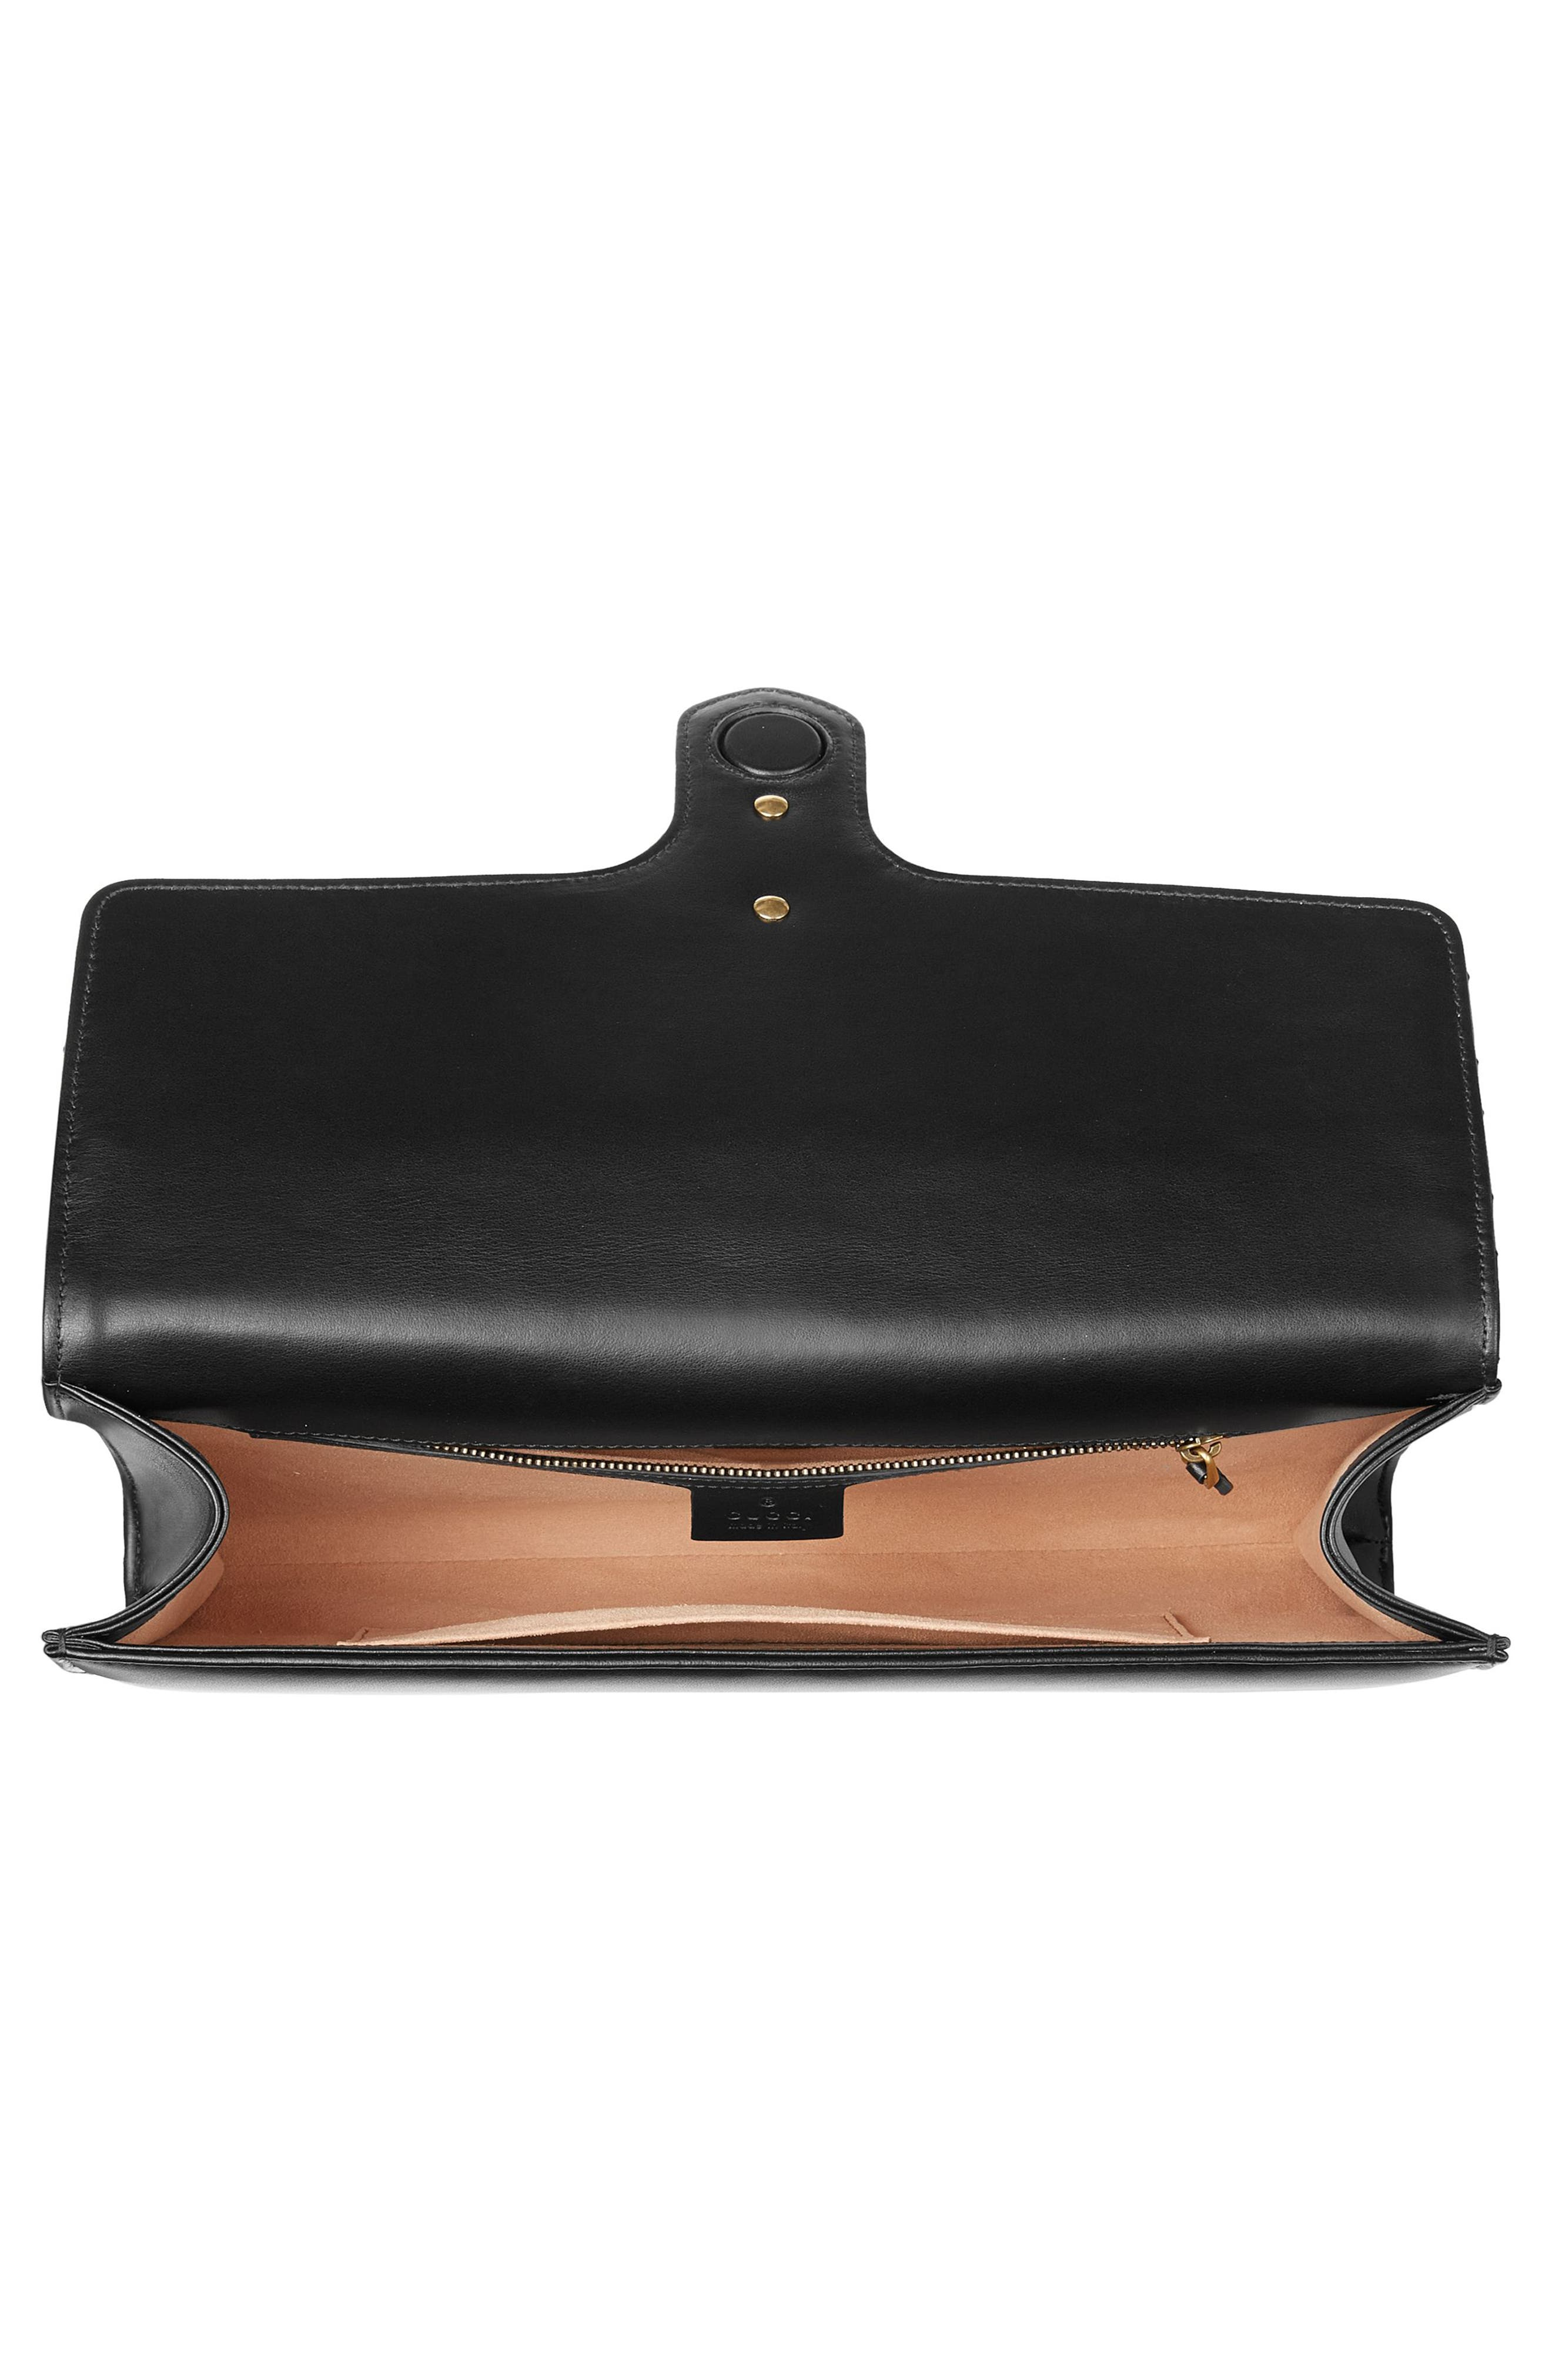 GG Marmont 2.0 Matelassé Leather Clutch,                             Alternate thumbnail 3, color,                             005